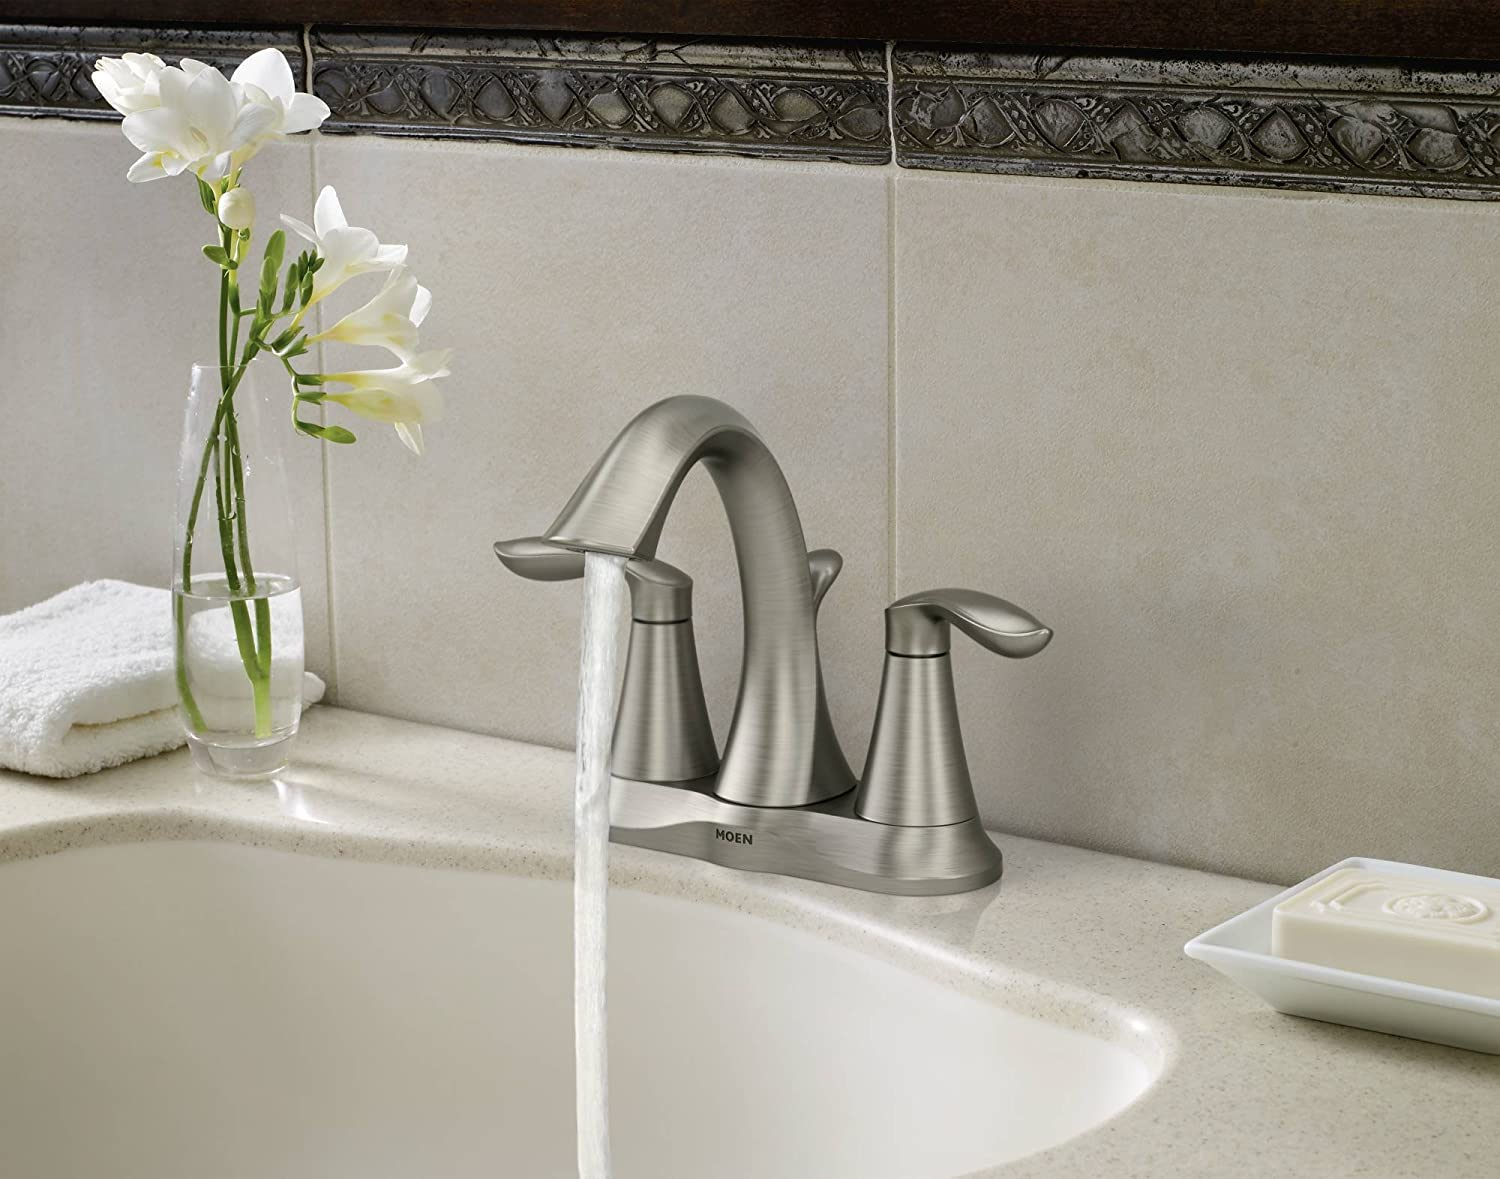 Moen 6410BN EVA Two Handle Lavatory Faucet